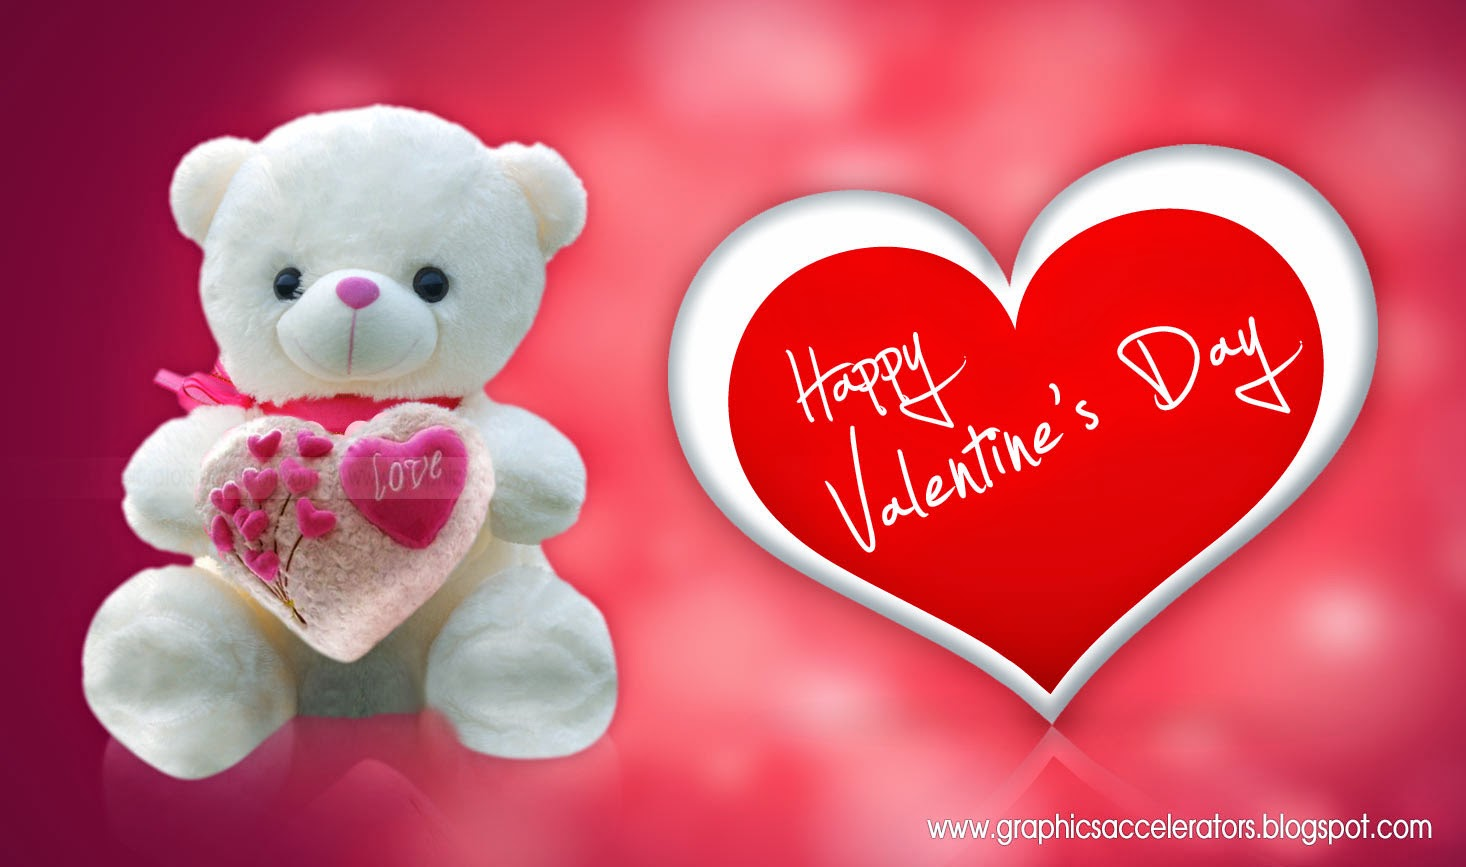 Happy Valentines Day 2016 Greeting Cards – Valentine Day Cards for Girlfriend